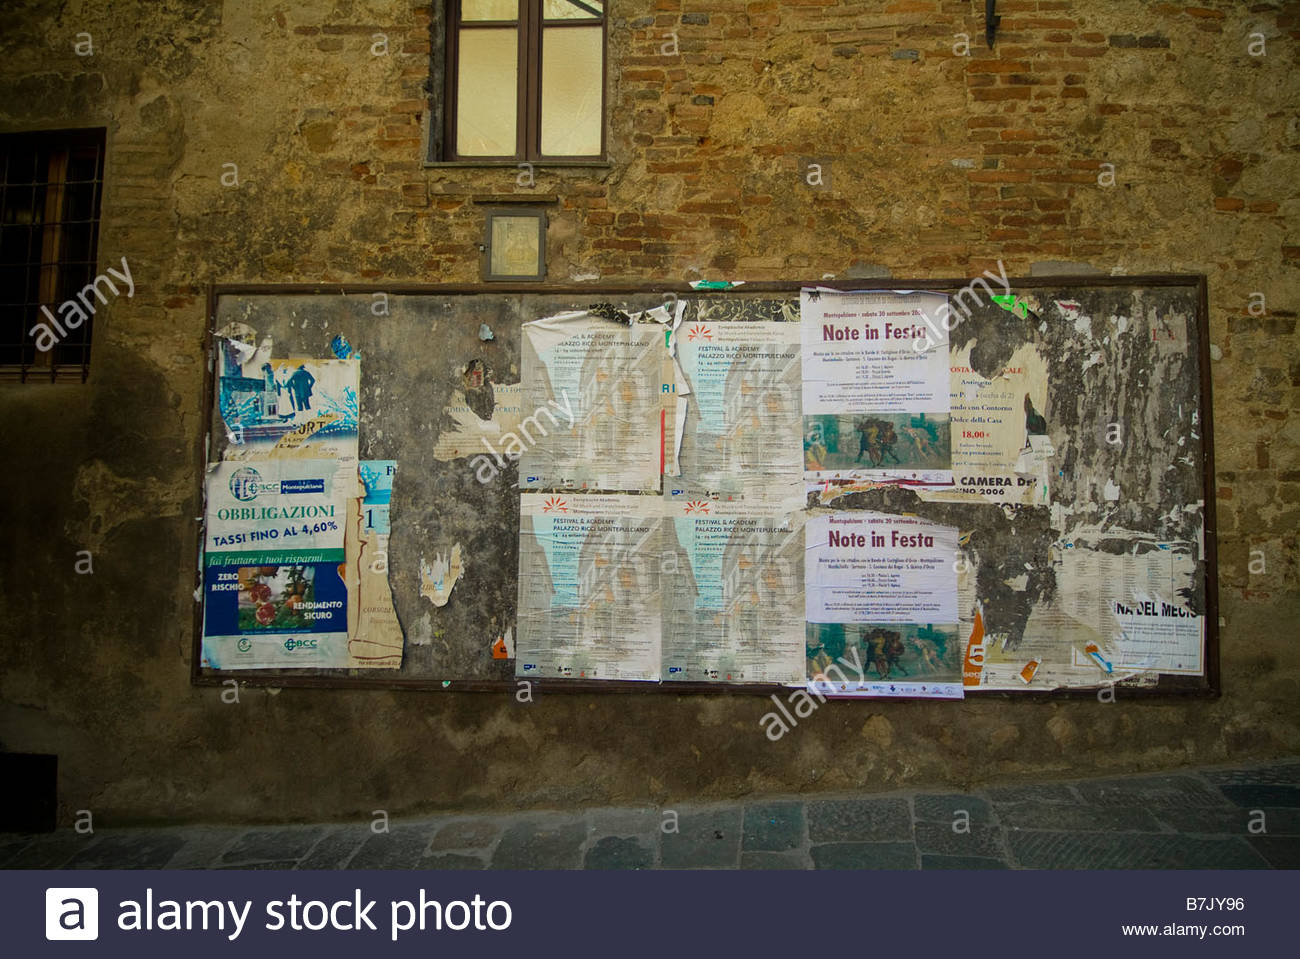 Bulletin board - Stock Image